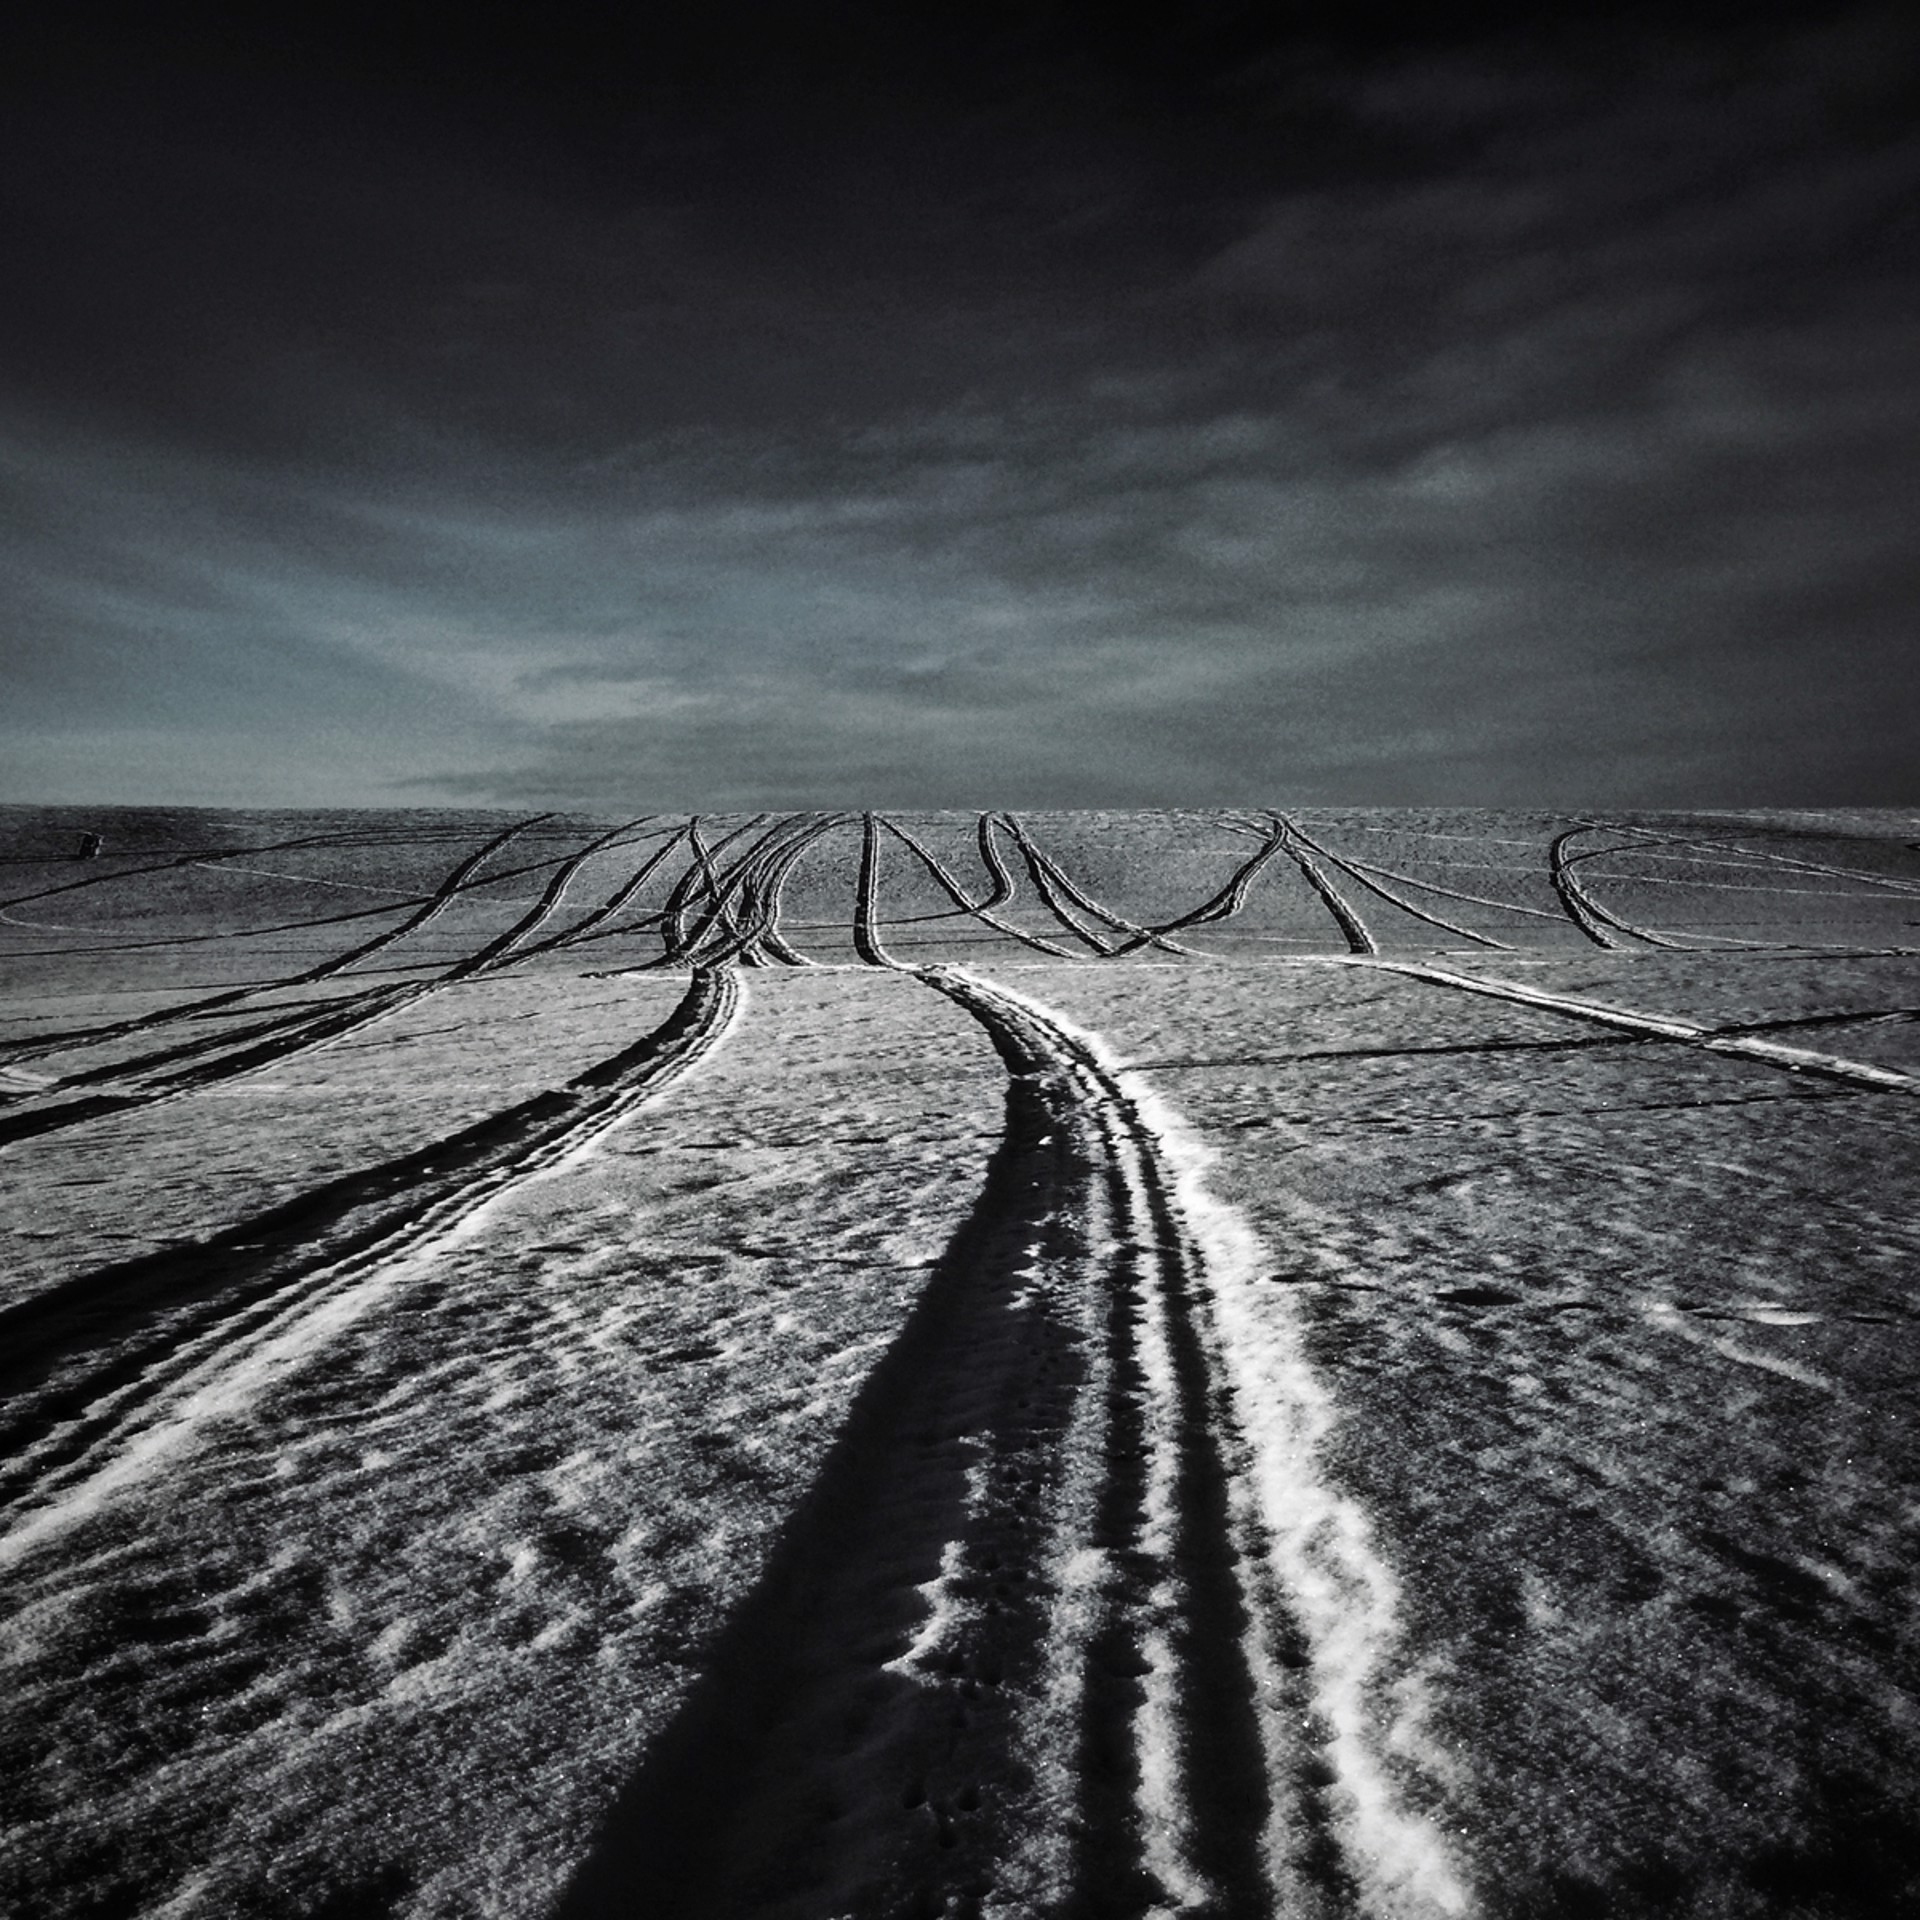 Track Marks by Allan Bailey